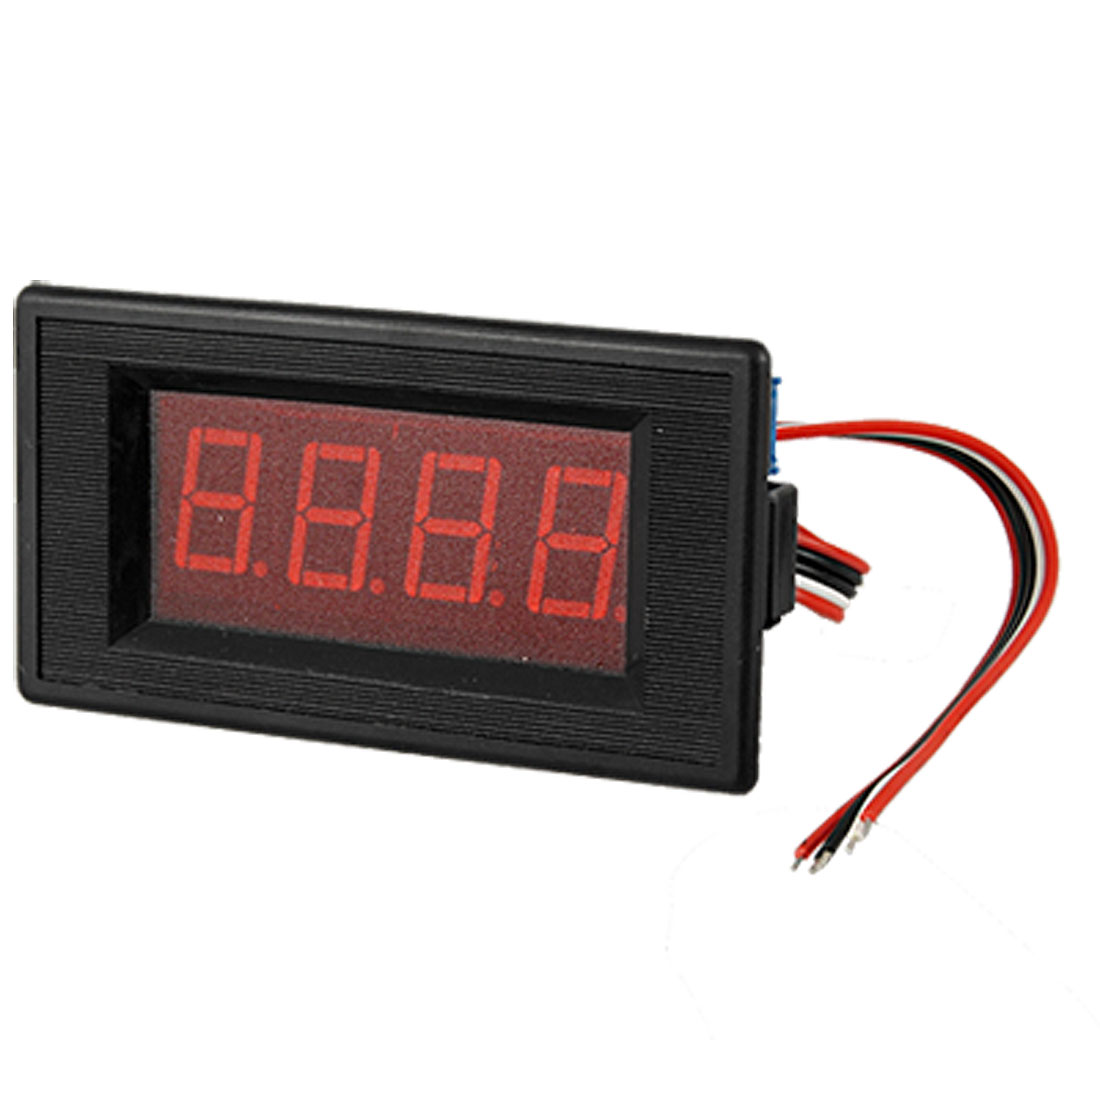 DC100A 3 1/2 Digital Red LED Panel Ammeter 5 Wires 75MV